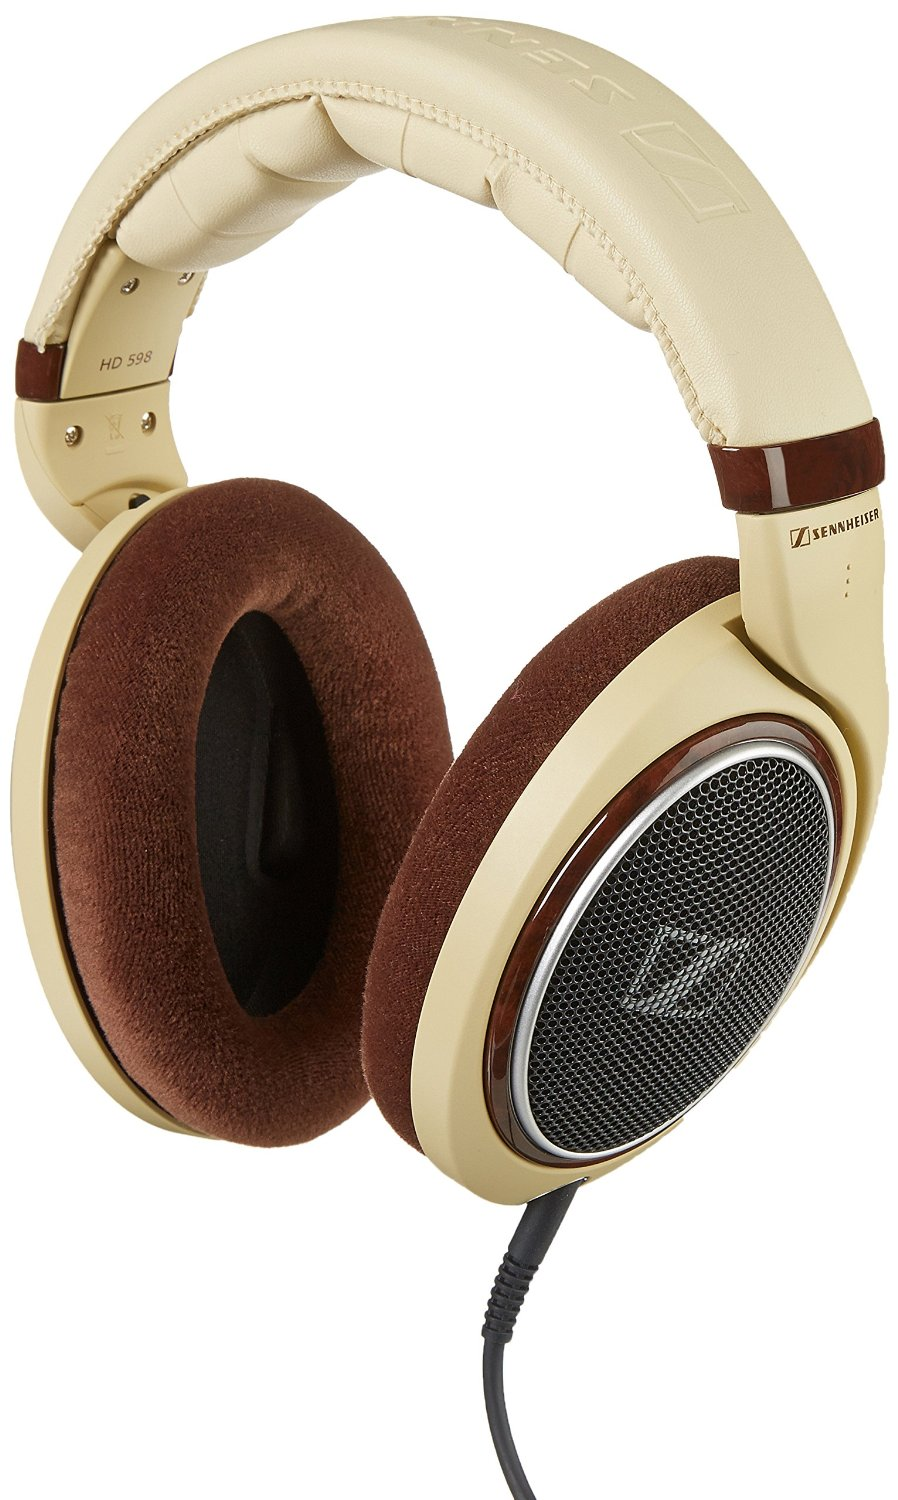 Sennheiser HD 598 Over Ear